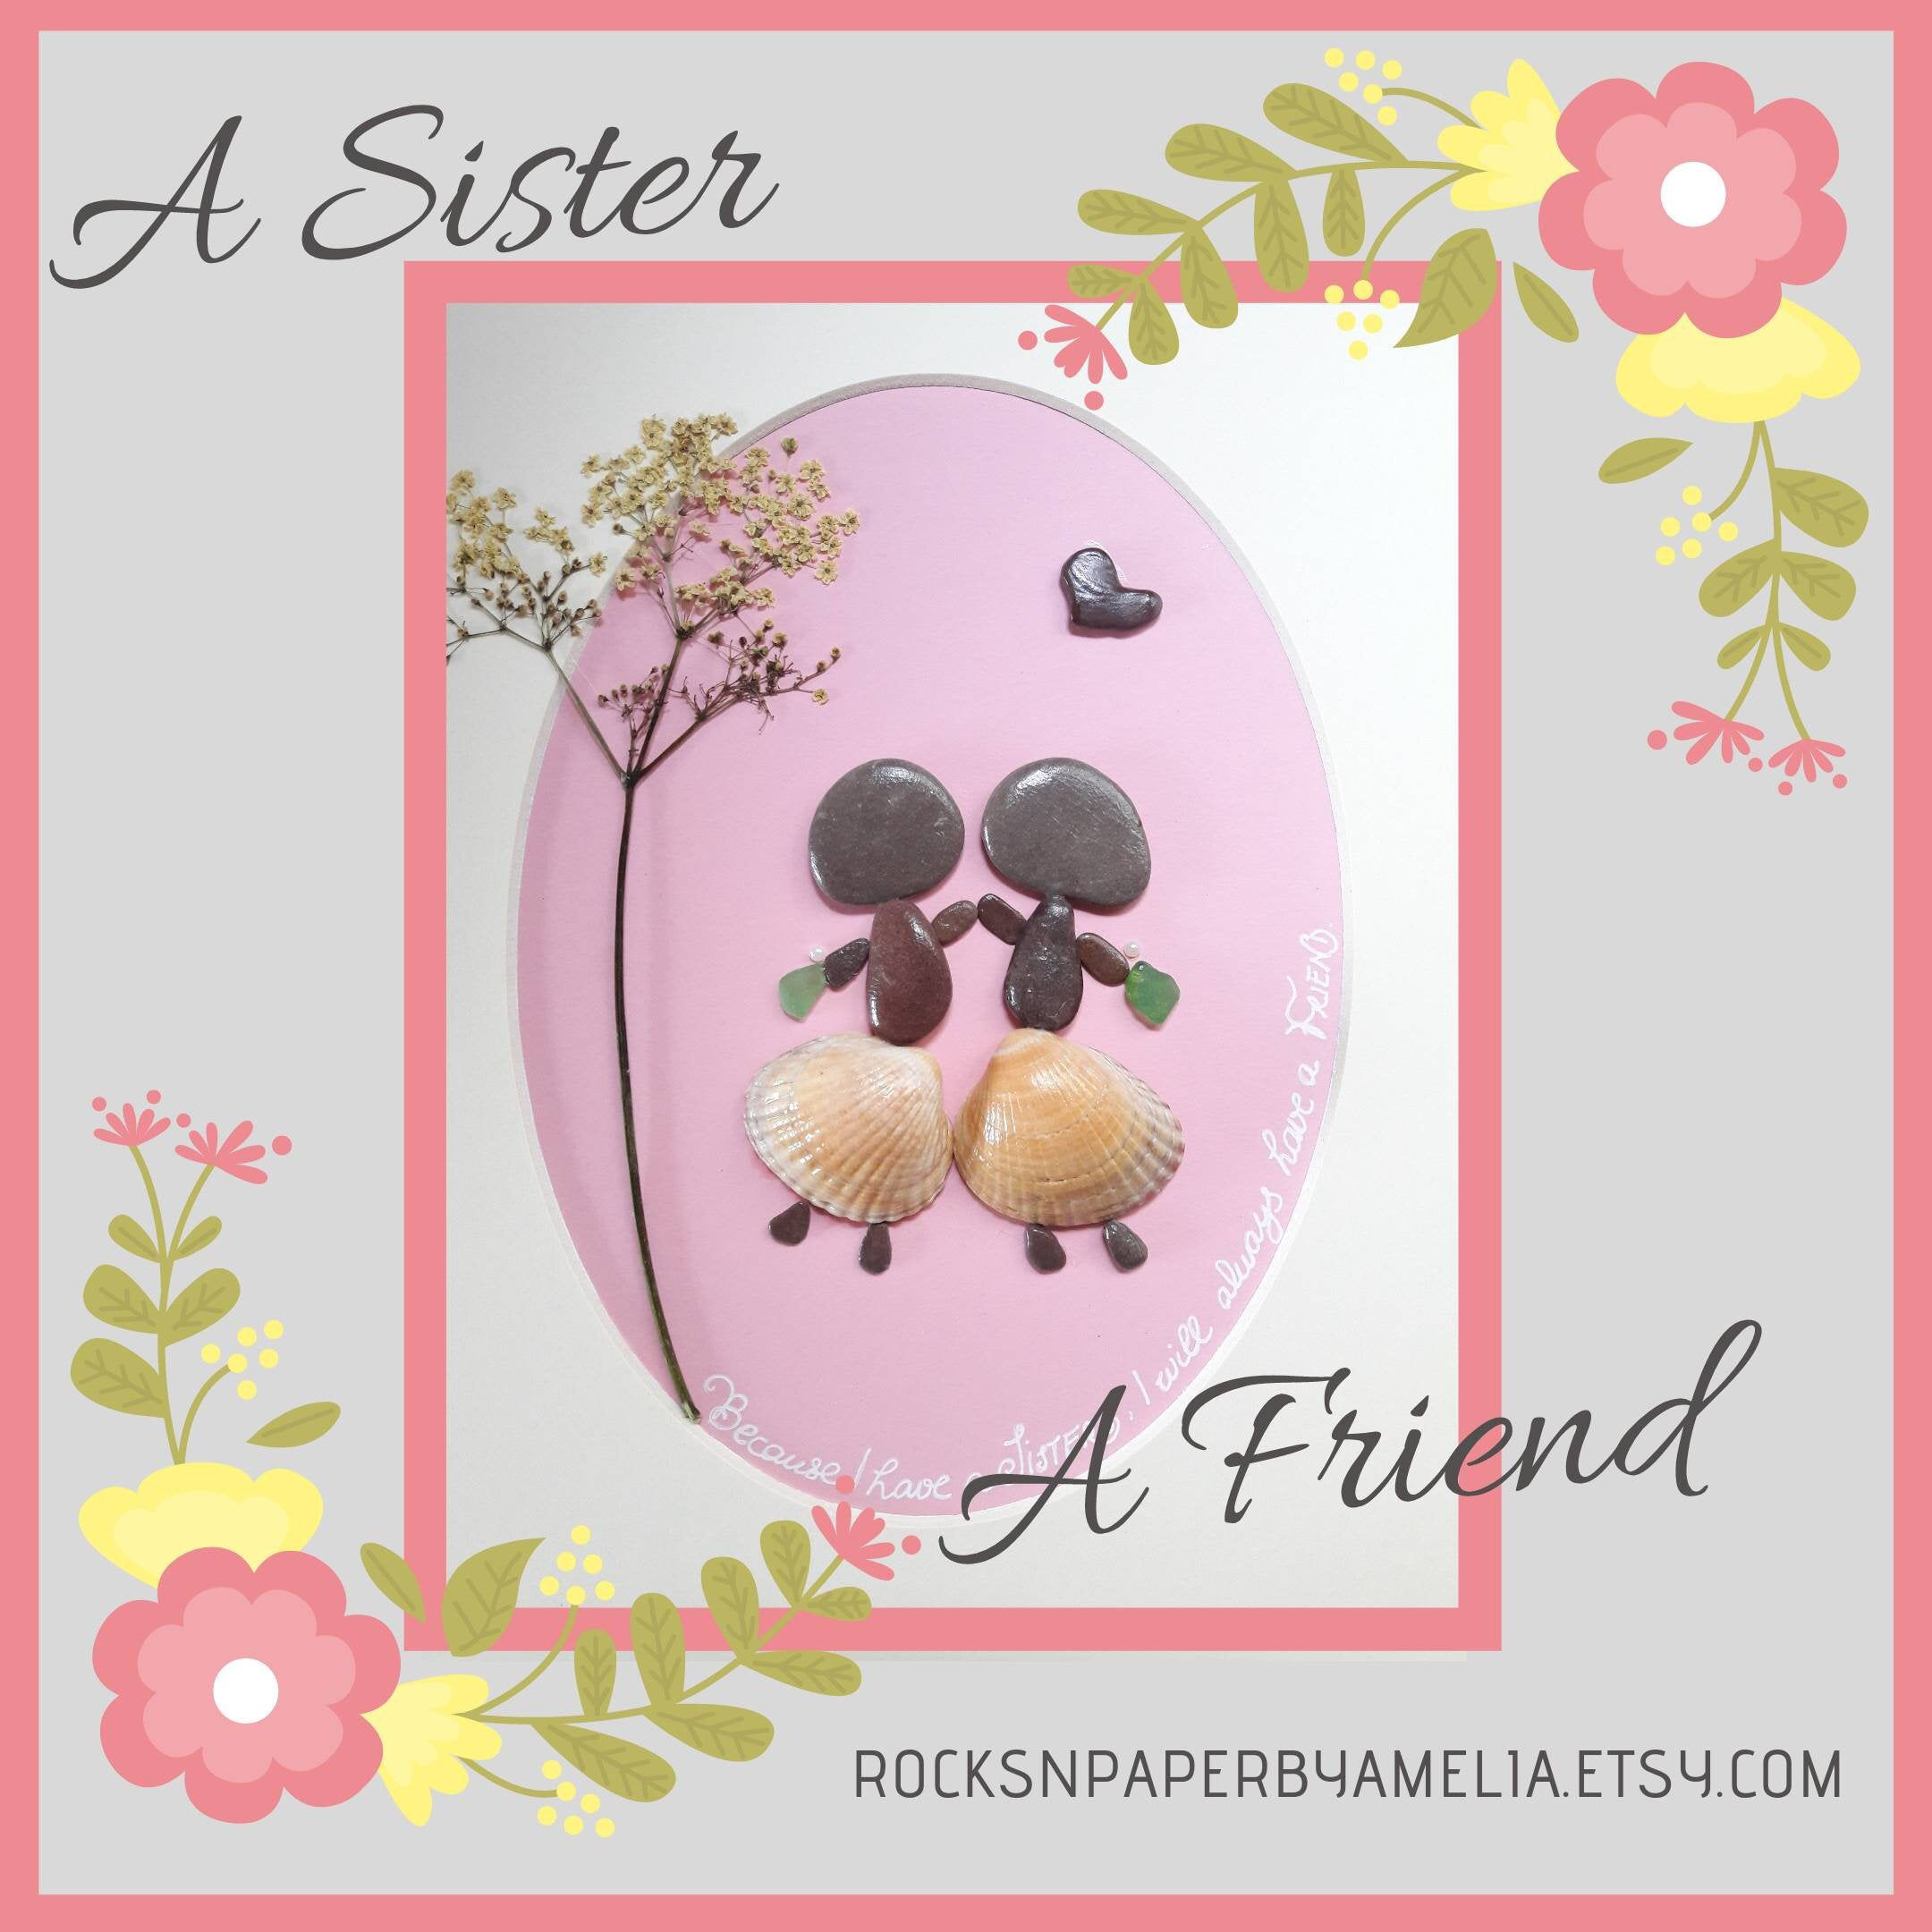 Gifts For Her, Sister, Friend, Maid Of Honour, Bridesmaid